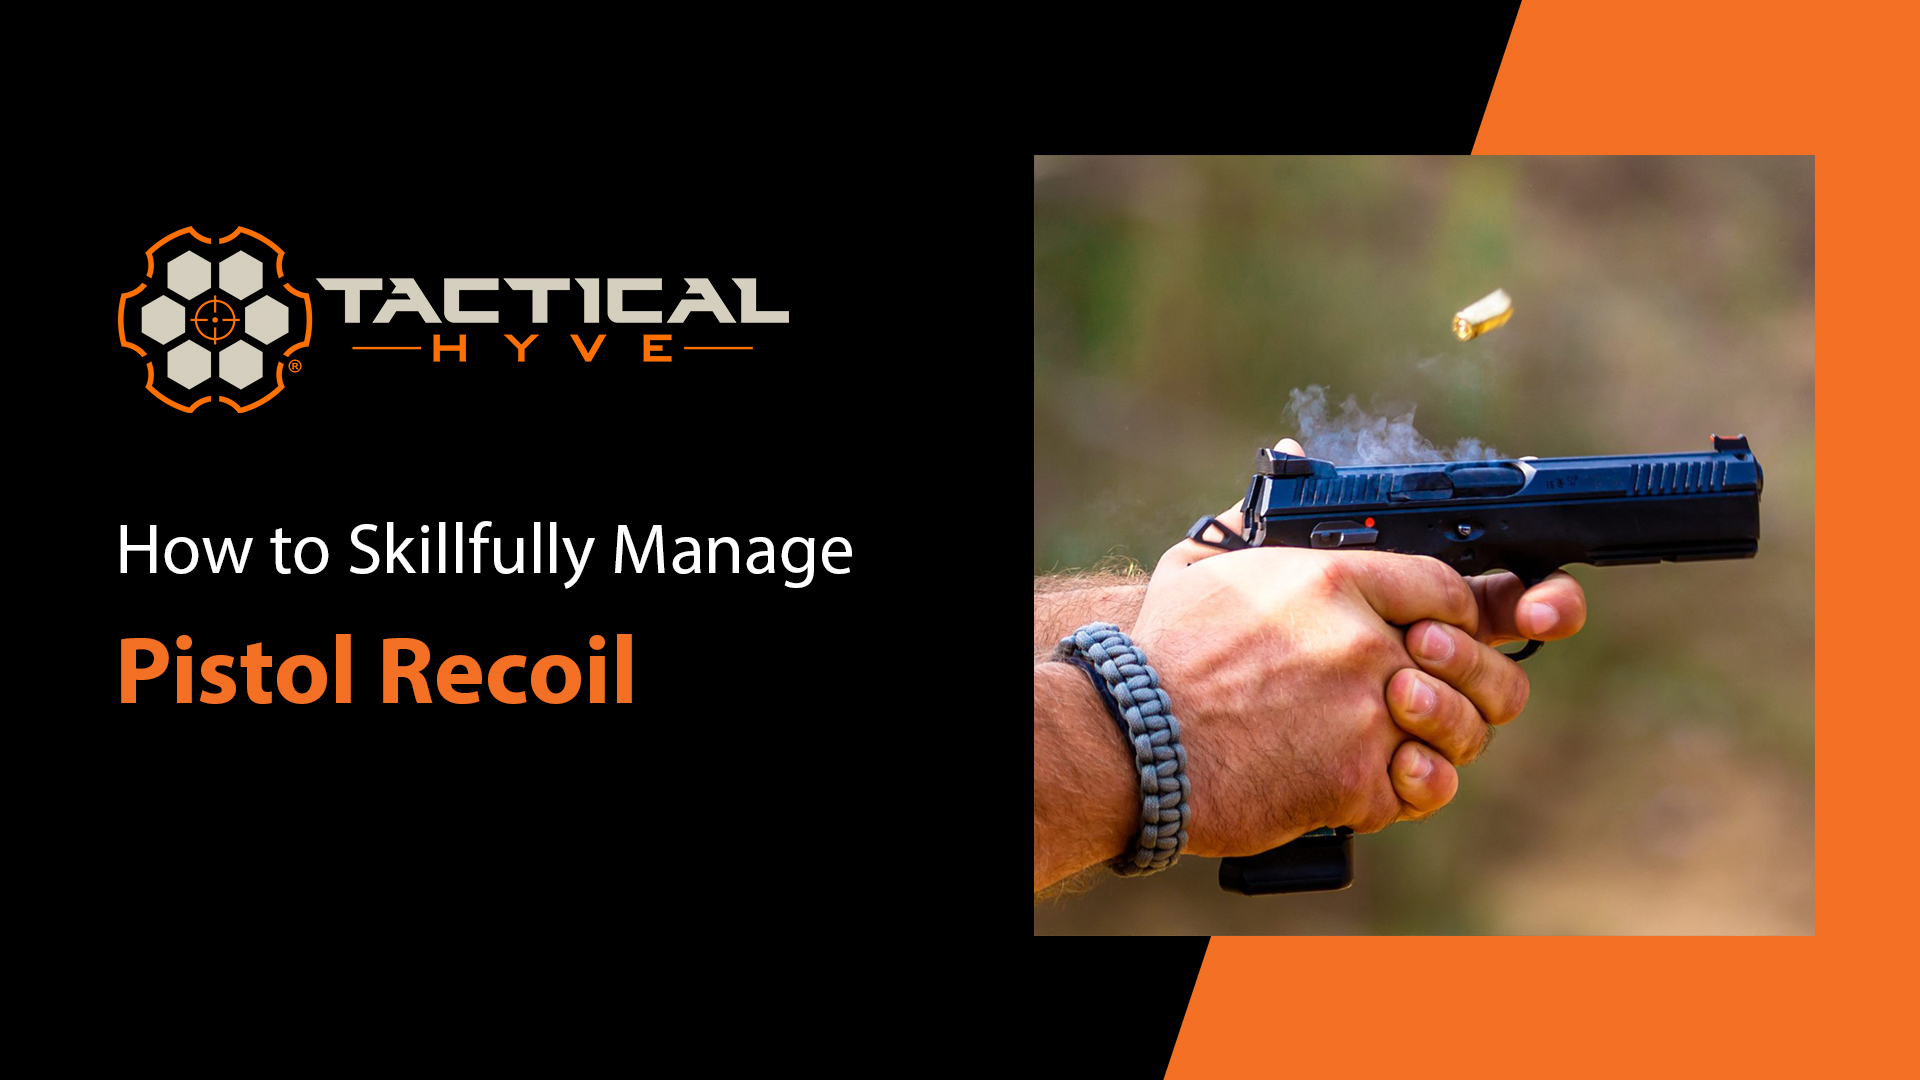 How to Skillfully Manage & Control Pistol Recoil - Tactical Hyve